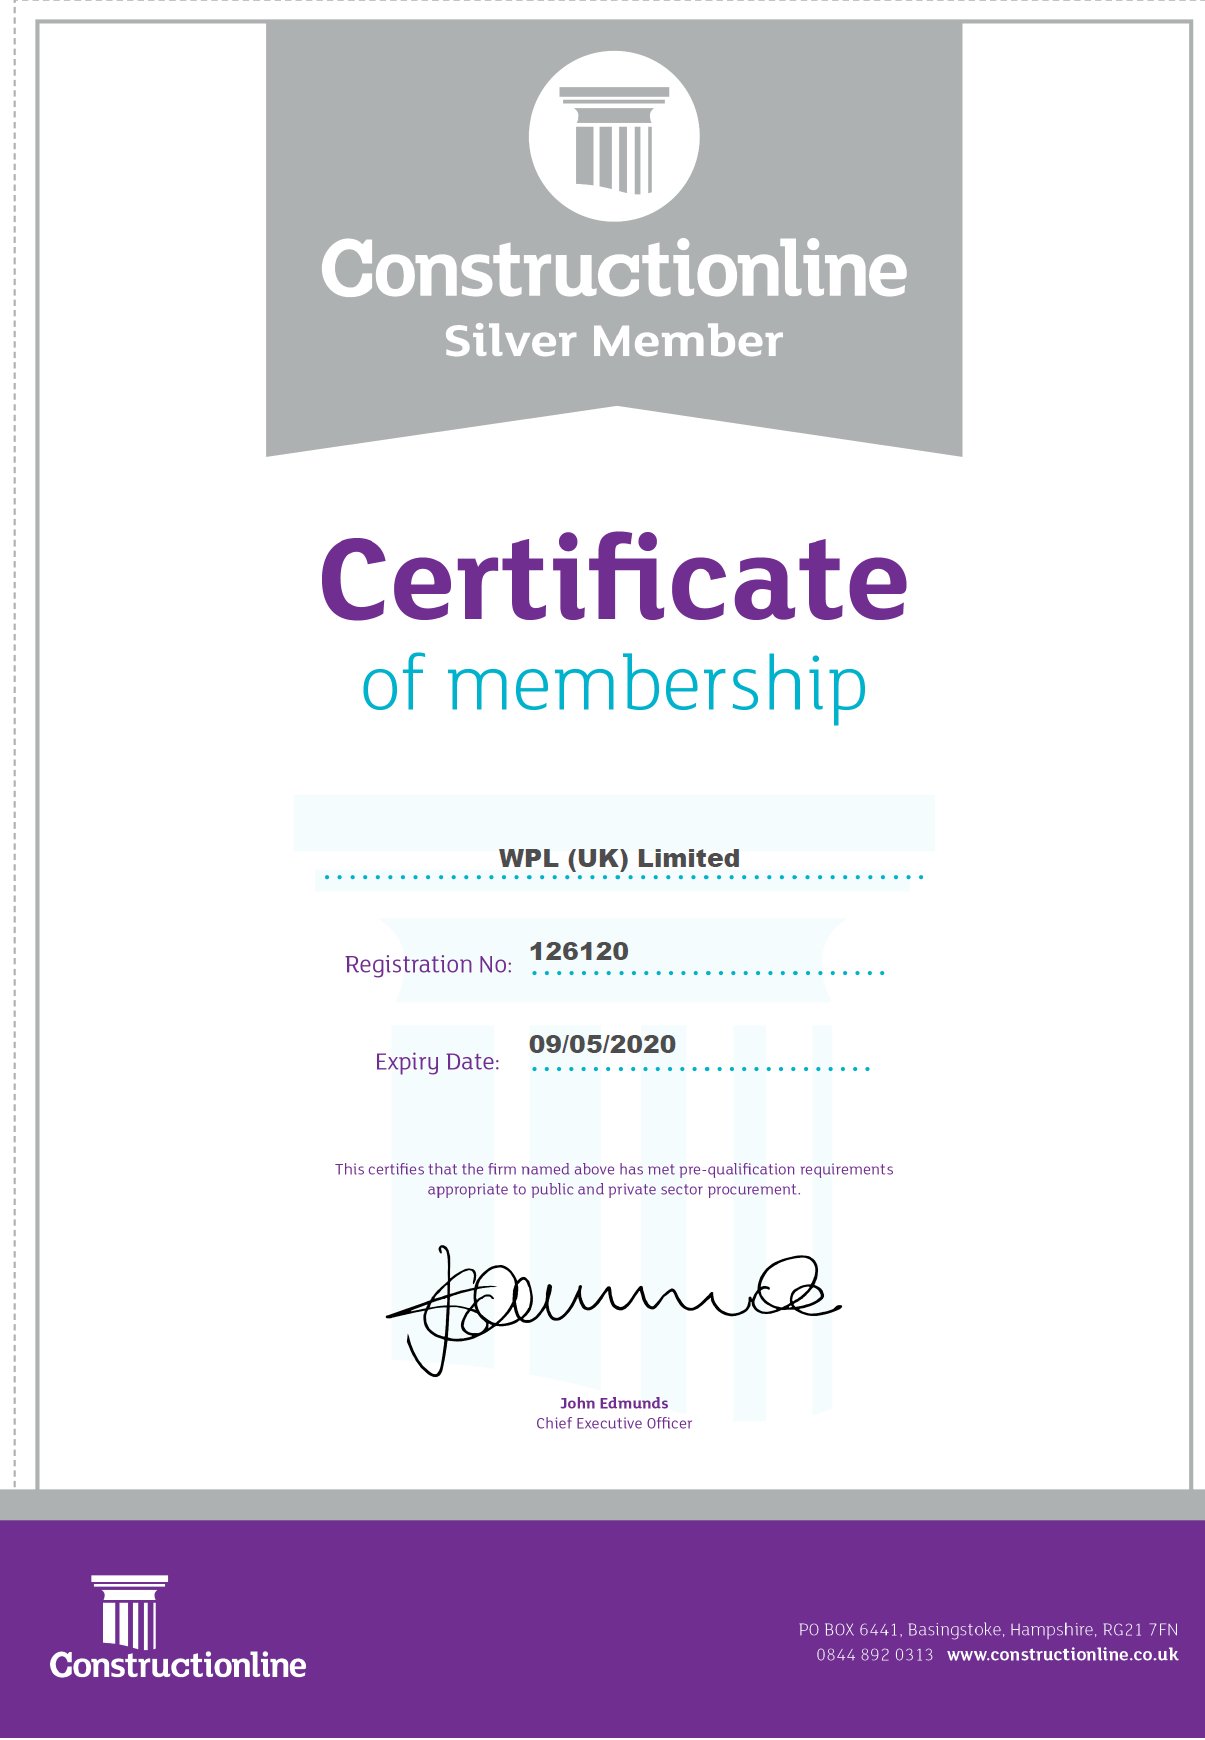 WPLUK Constructionline SILVER Certificate to 9th May 2020